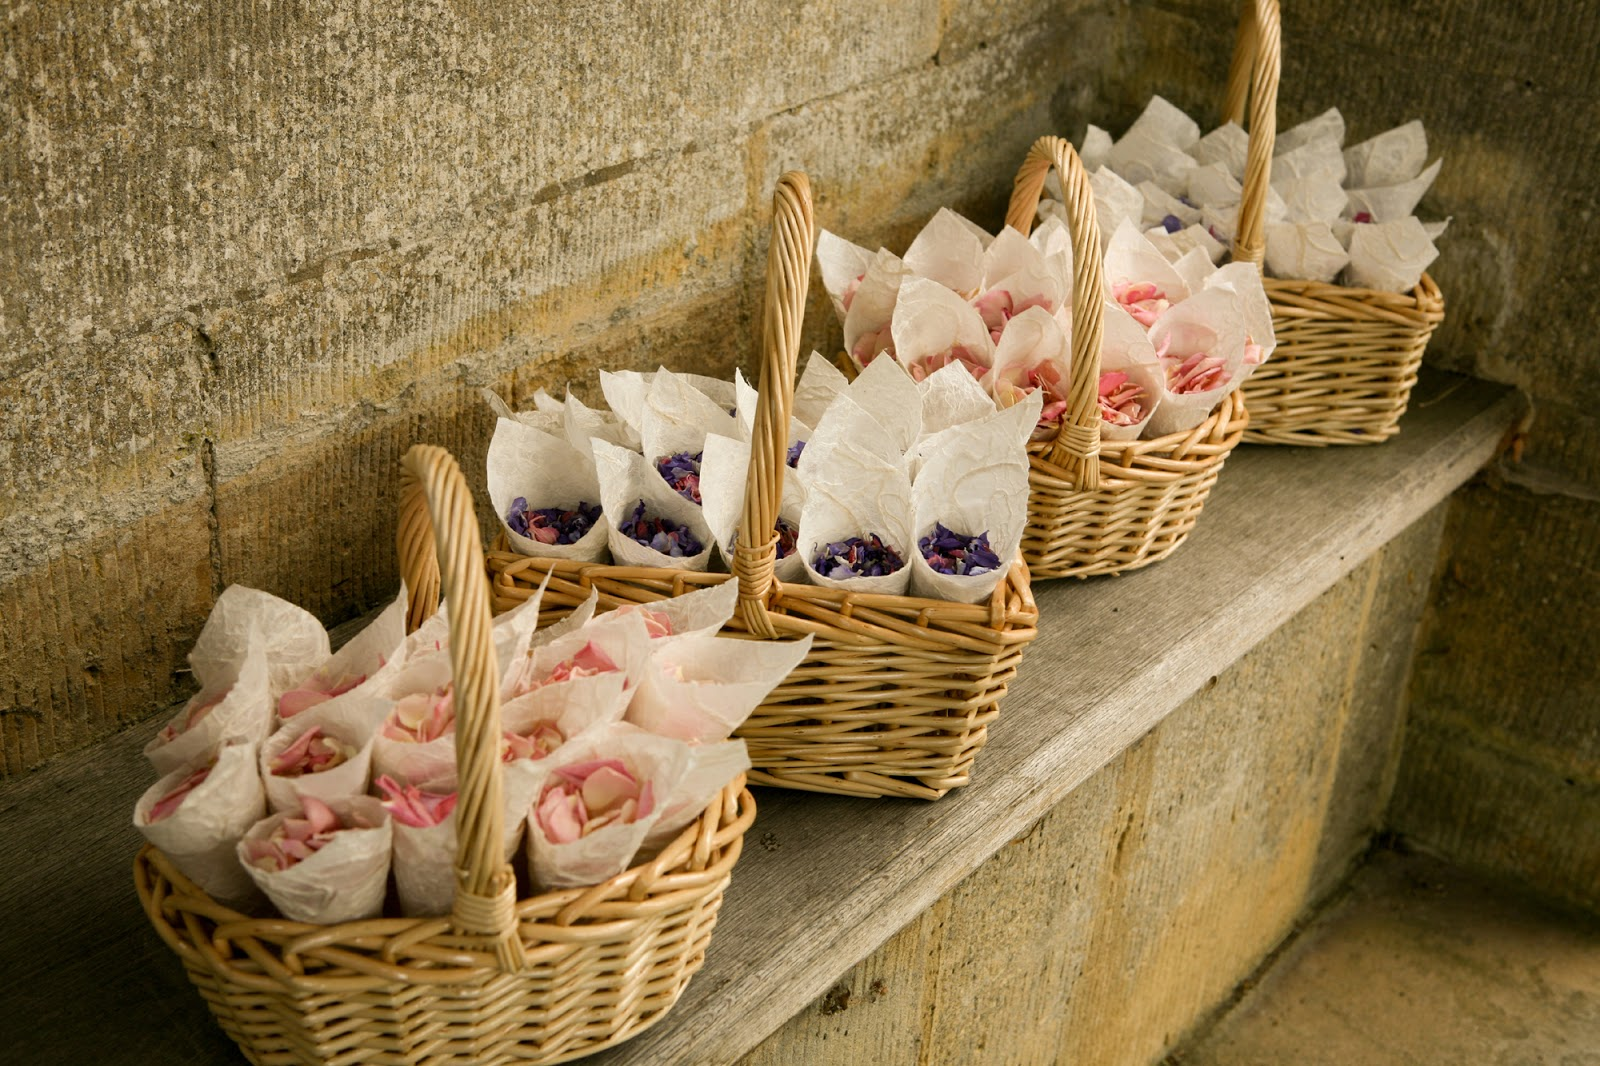 Wedding Baskets For Flower Petals : The confetti choosing your petal tips